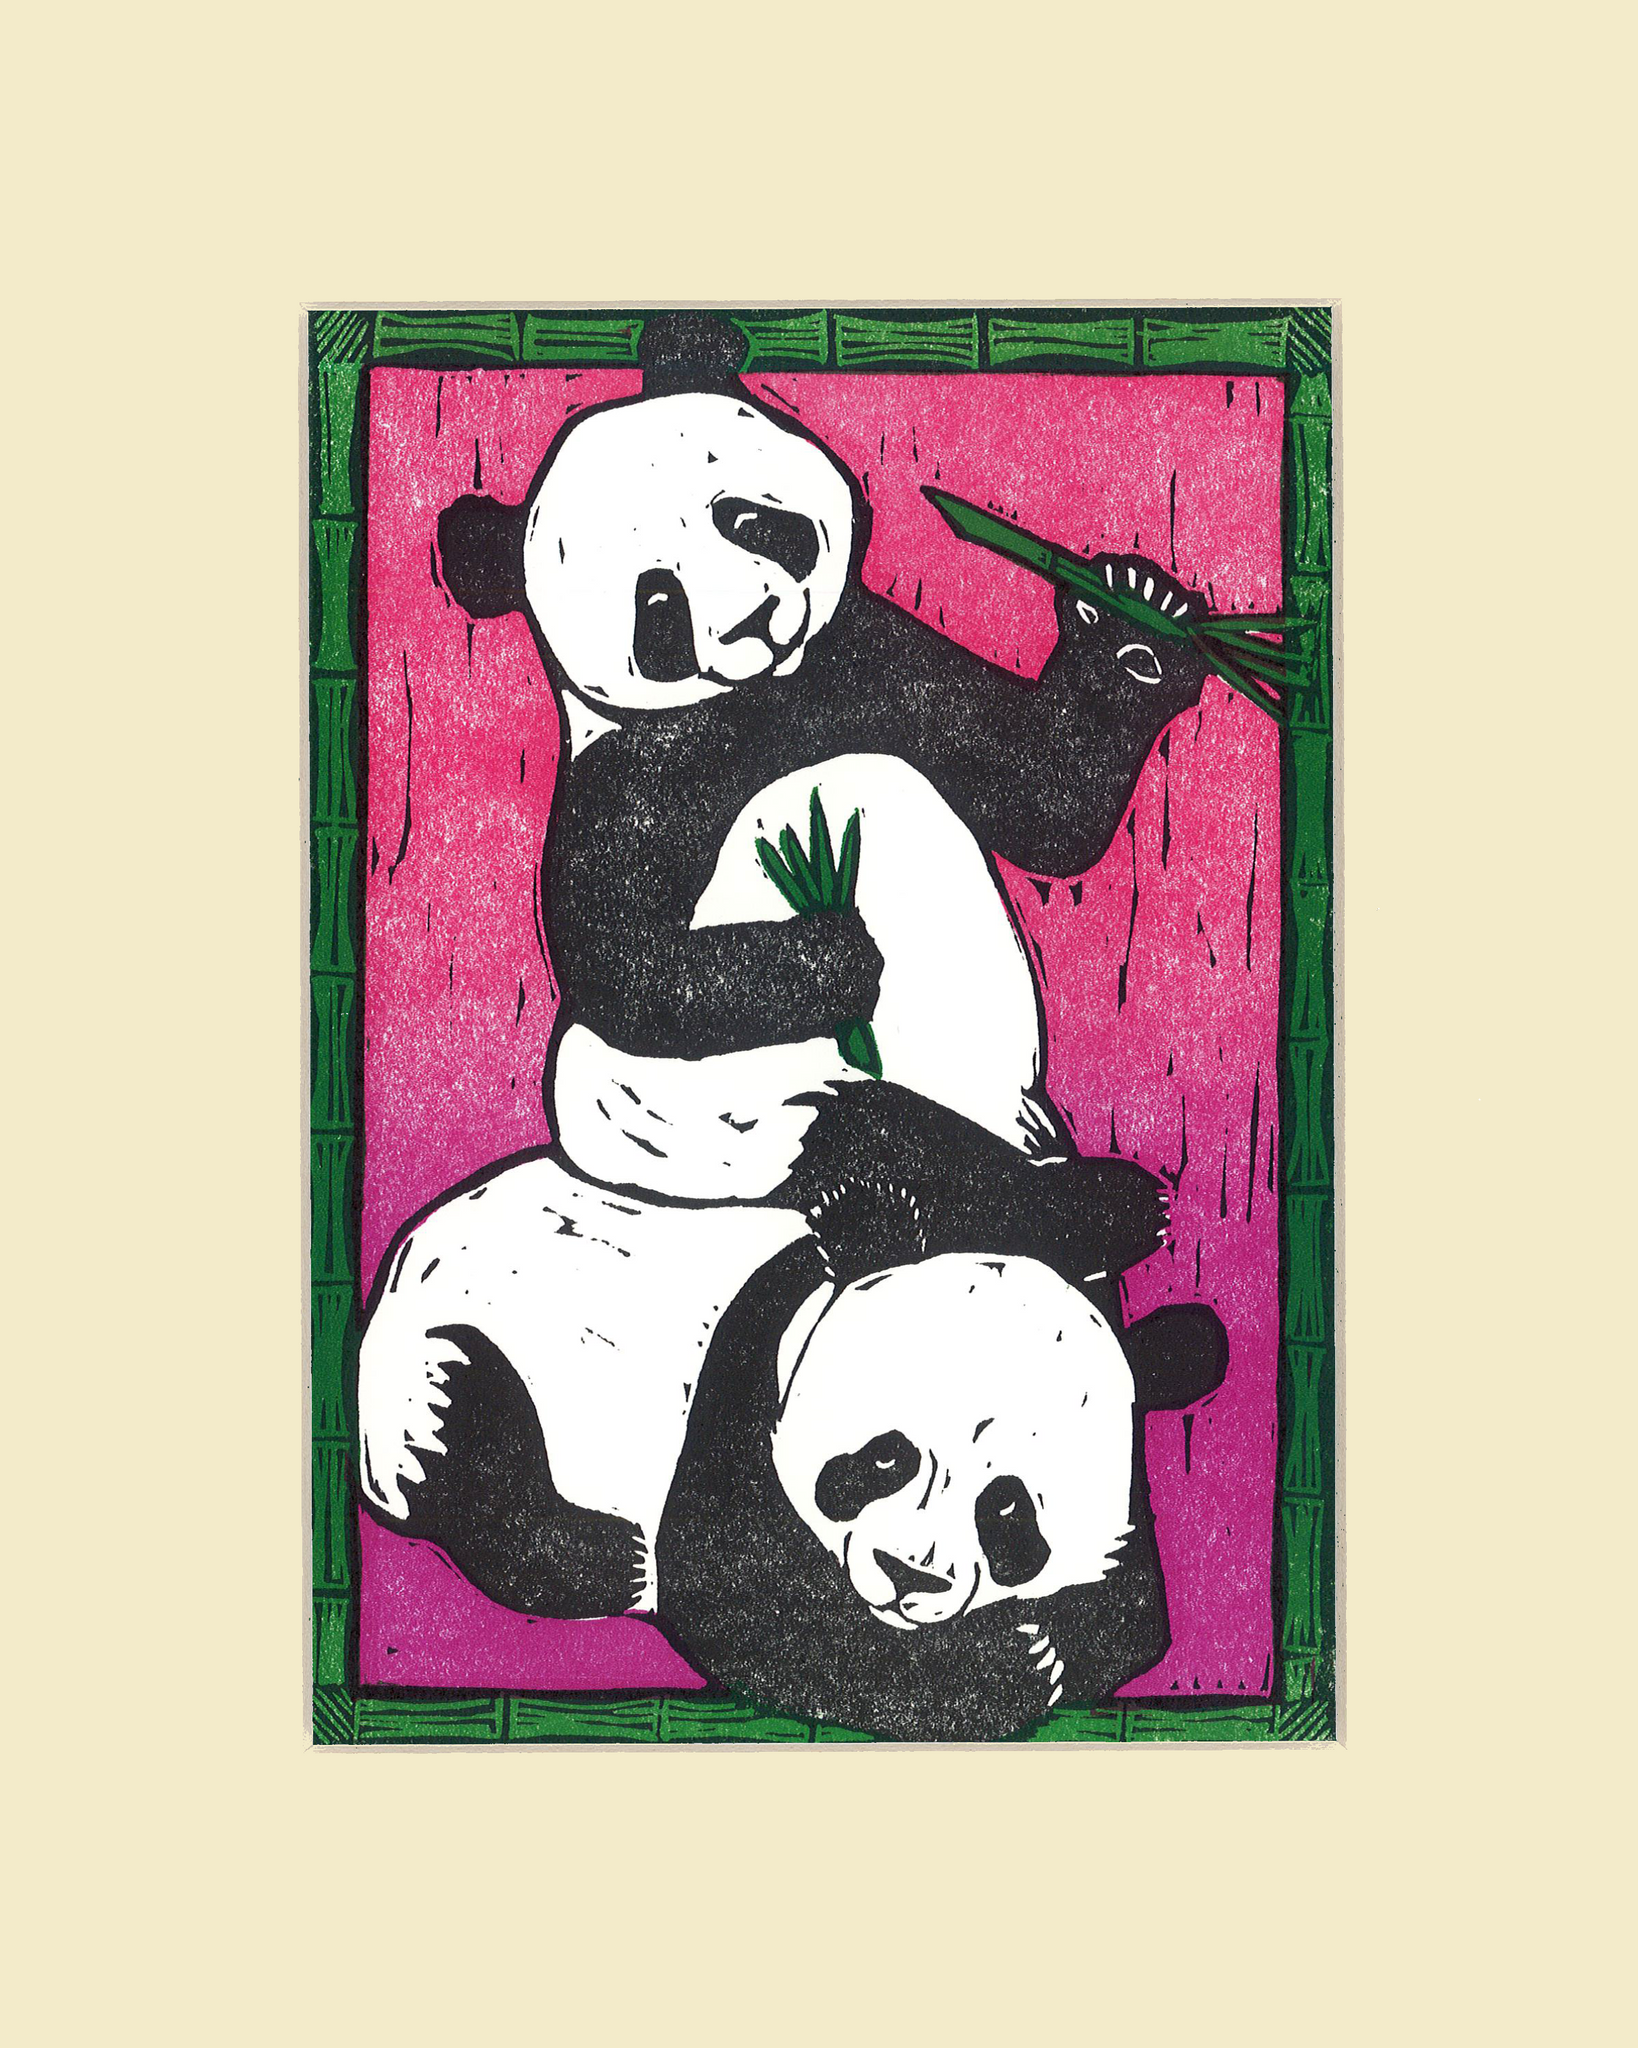 """Panda Play"" – Wendy Shaft Block Printed Images"